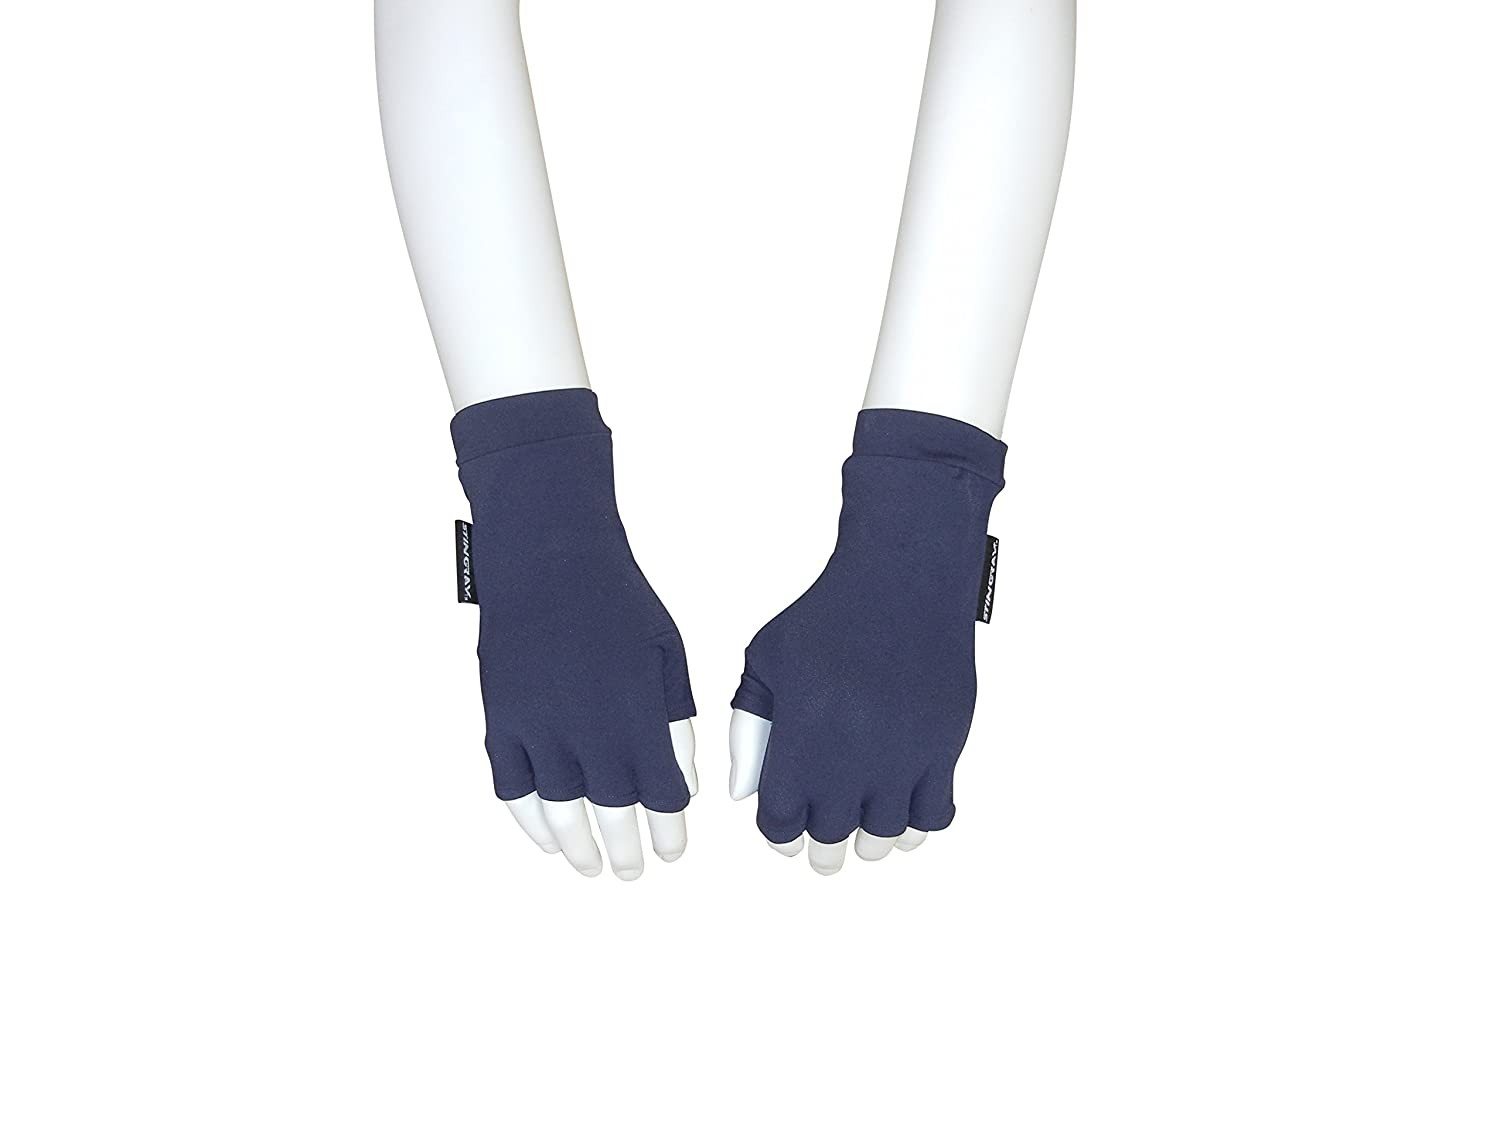 Driving gloves spf - Amazon Com Uv Sun Protective Fingerless Driving Gloves Navy Large Sports Outdoors